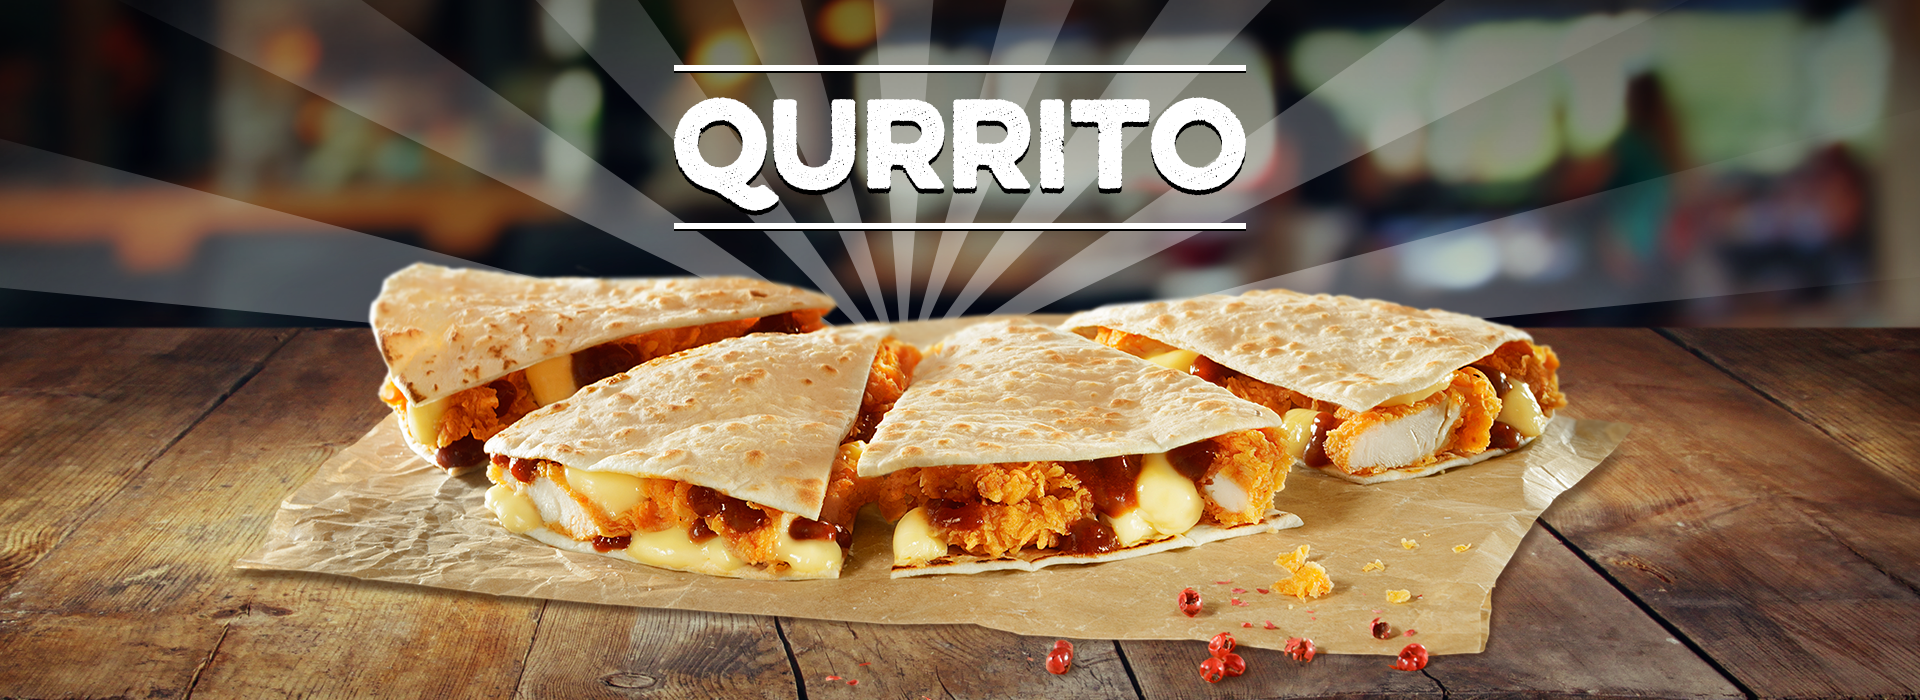 KFC_website_cover_qurrito